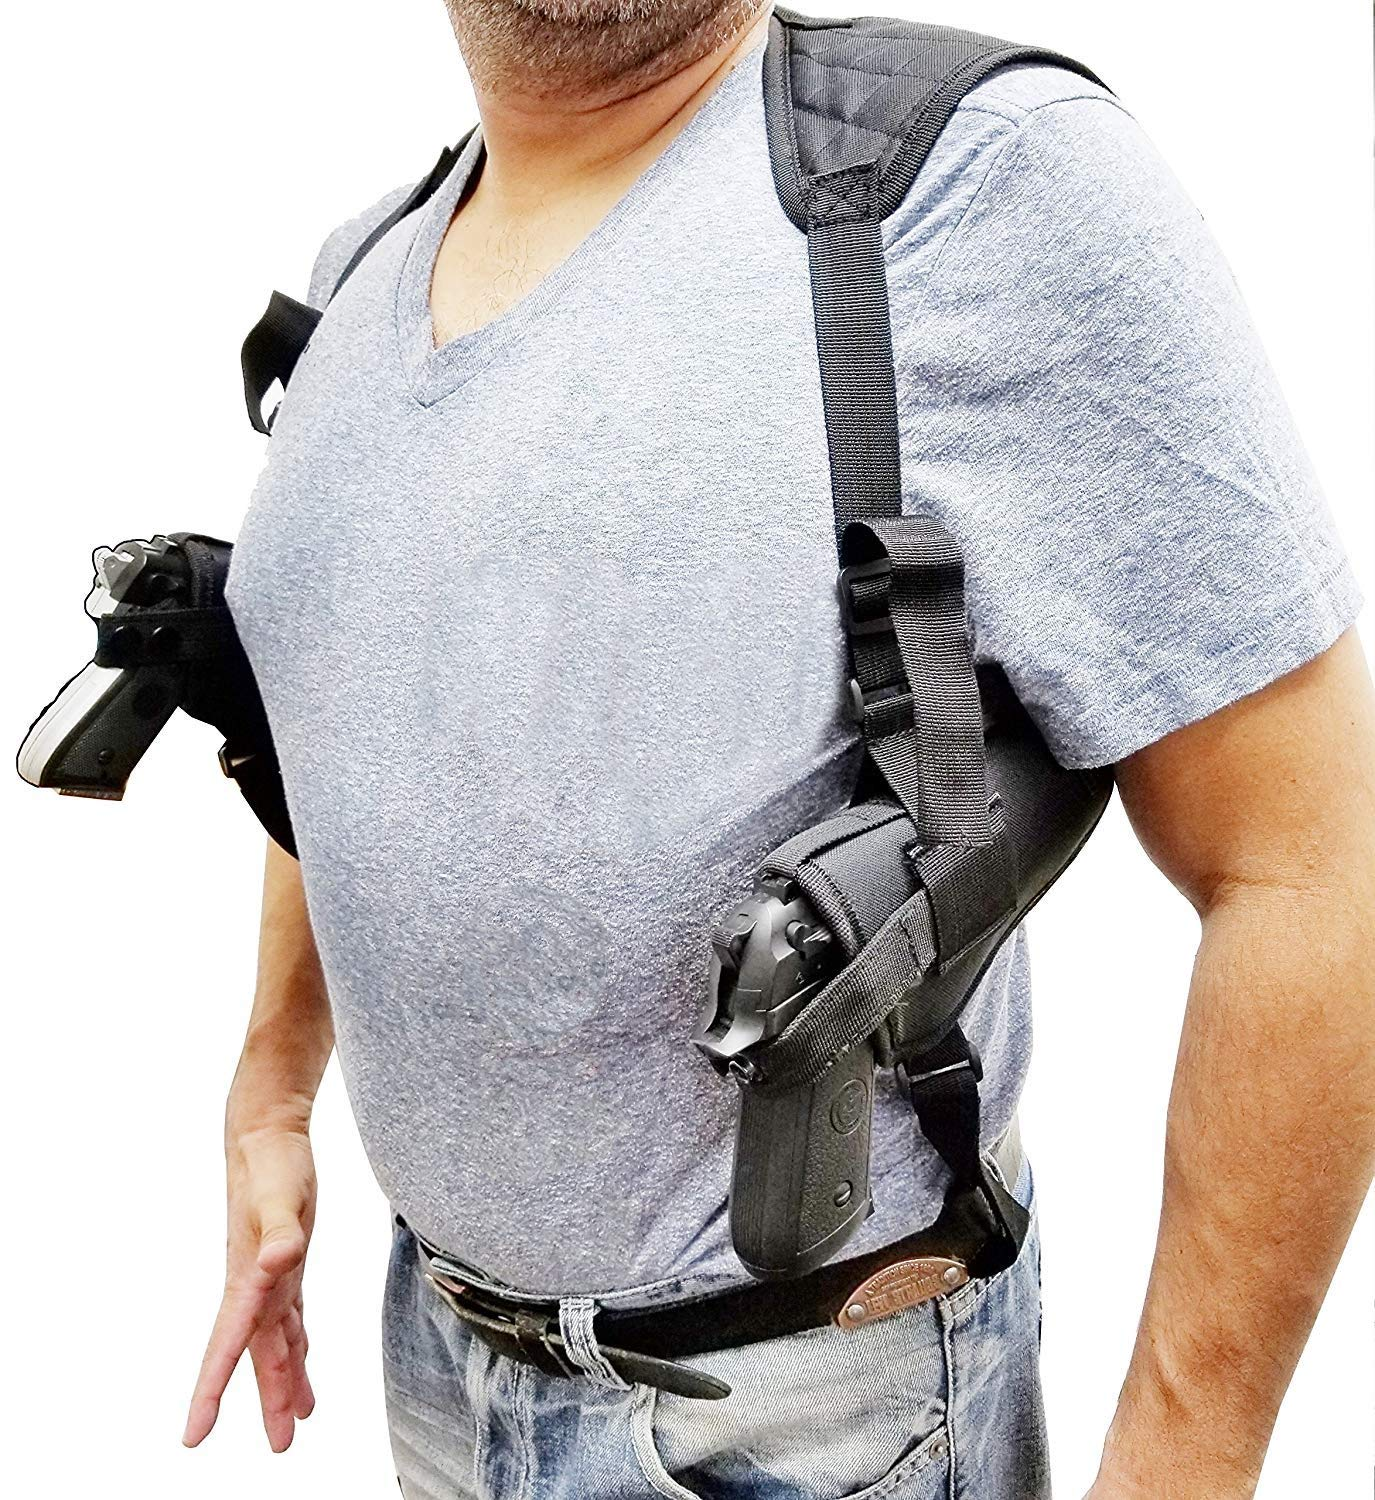 Cheap Concealed Tactical Gear, find Concealed Tactical Gear